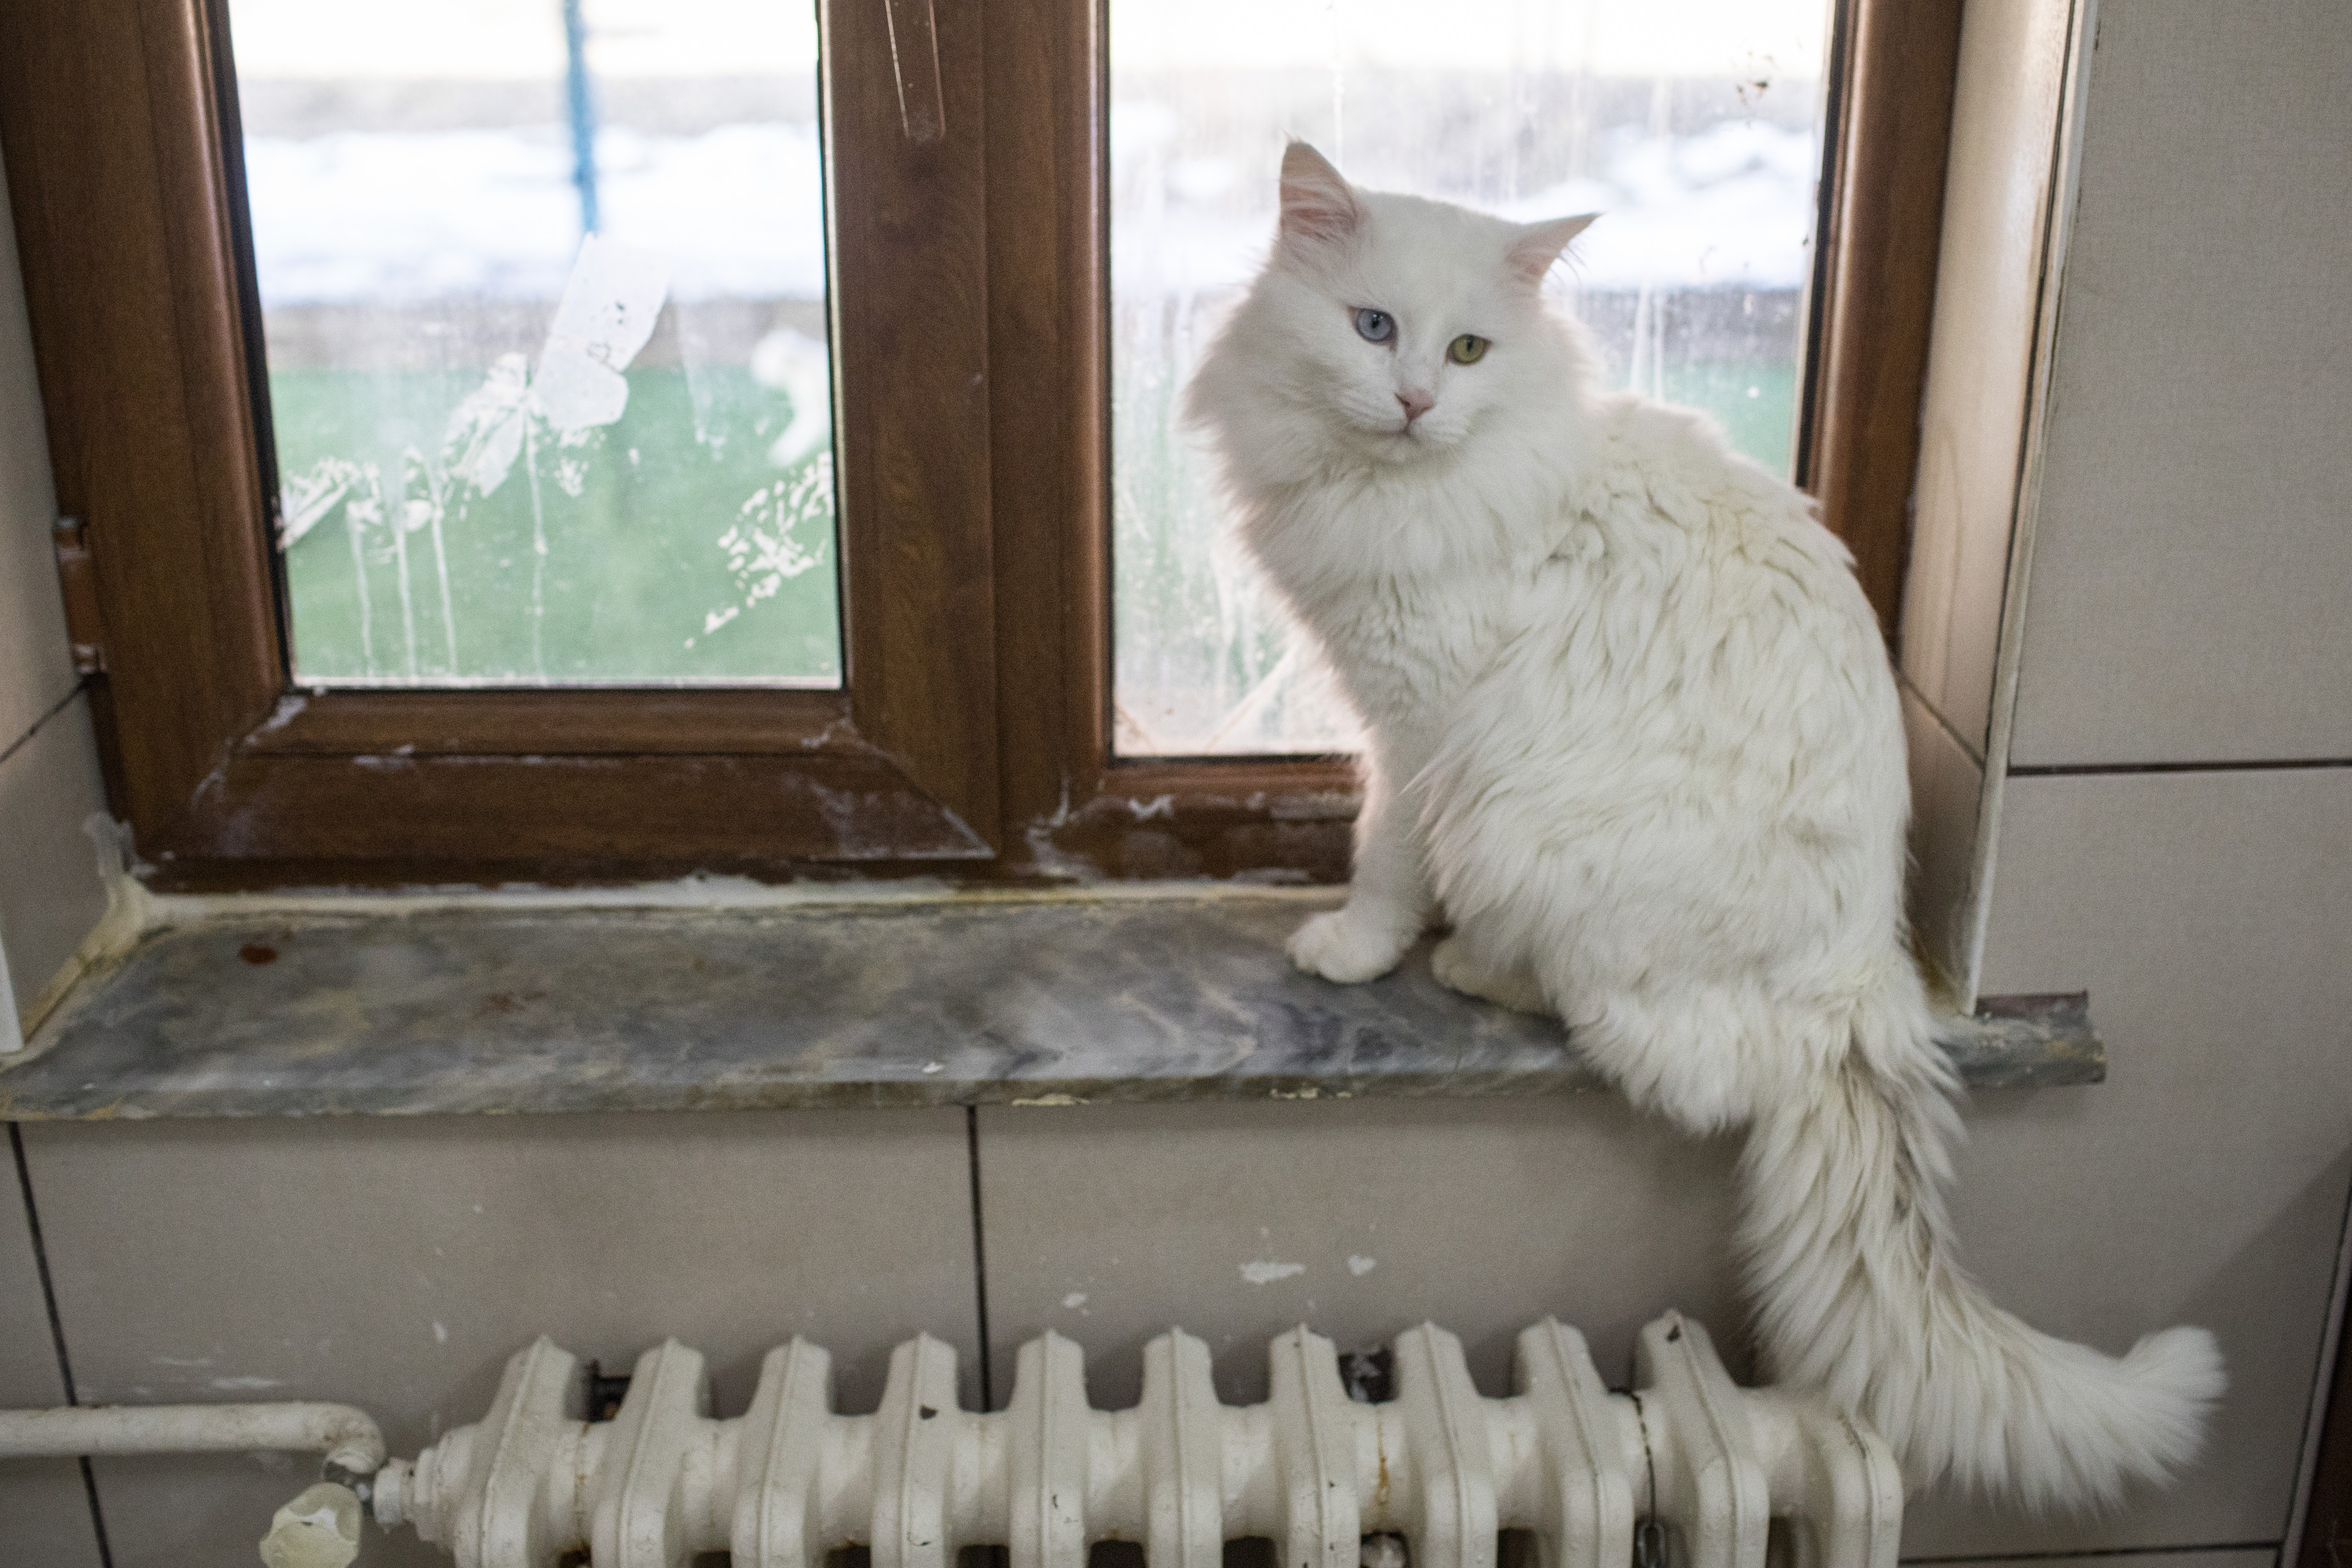 15 Common Things In Your Home You Never Knew Could Harm Your Cat